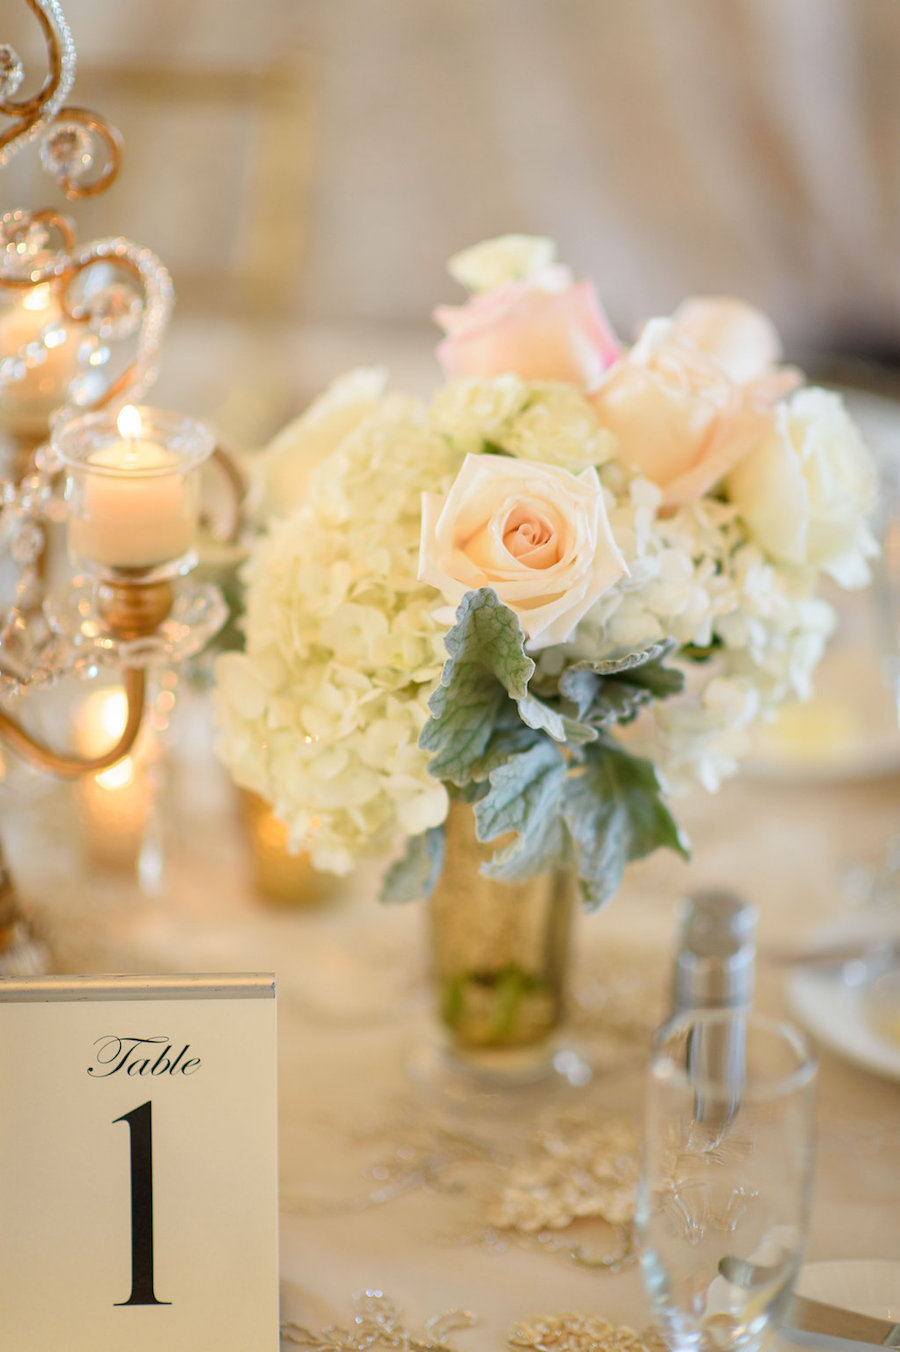 White, Blush Pink and Gold Wedding Centerpieces with Candelabra and Rhinestone Crystals | St Pete Beach Wedding Floral Designer Northside Florist